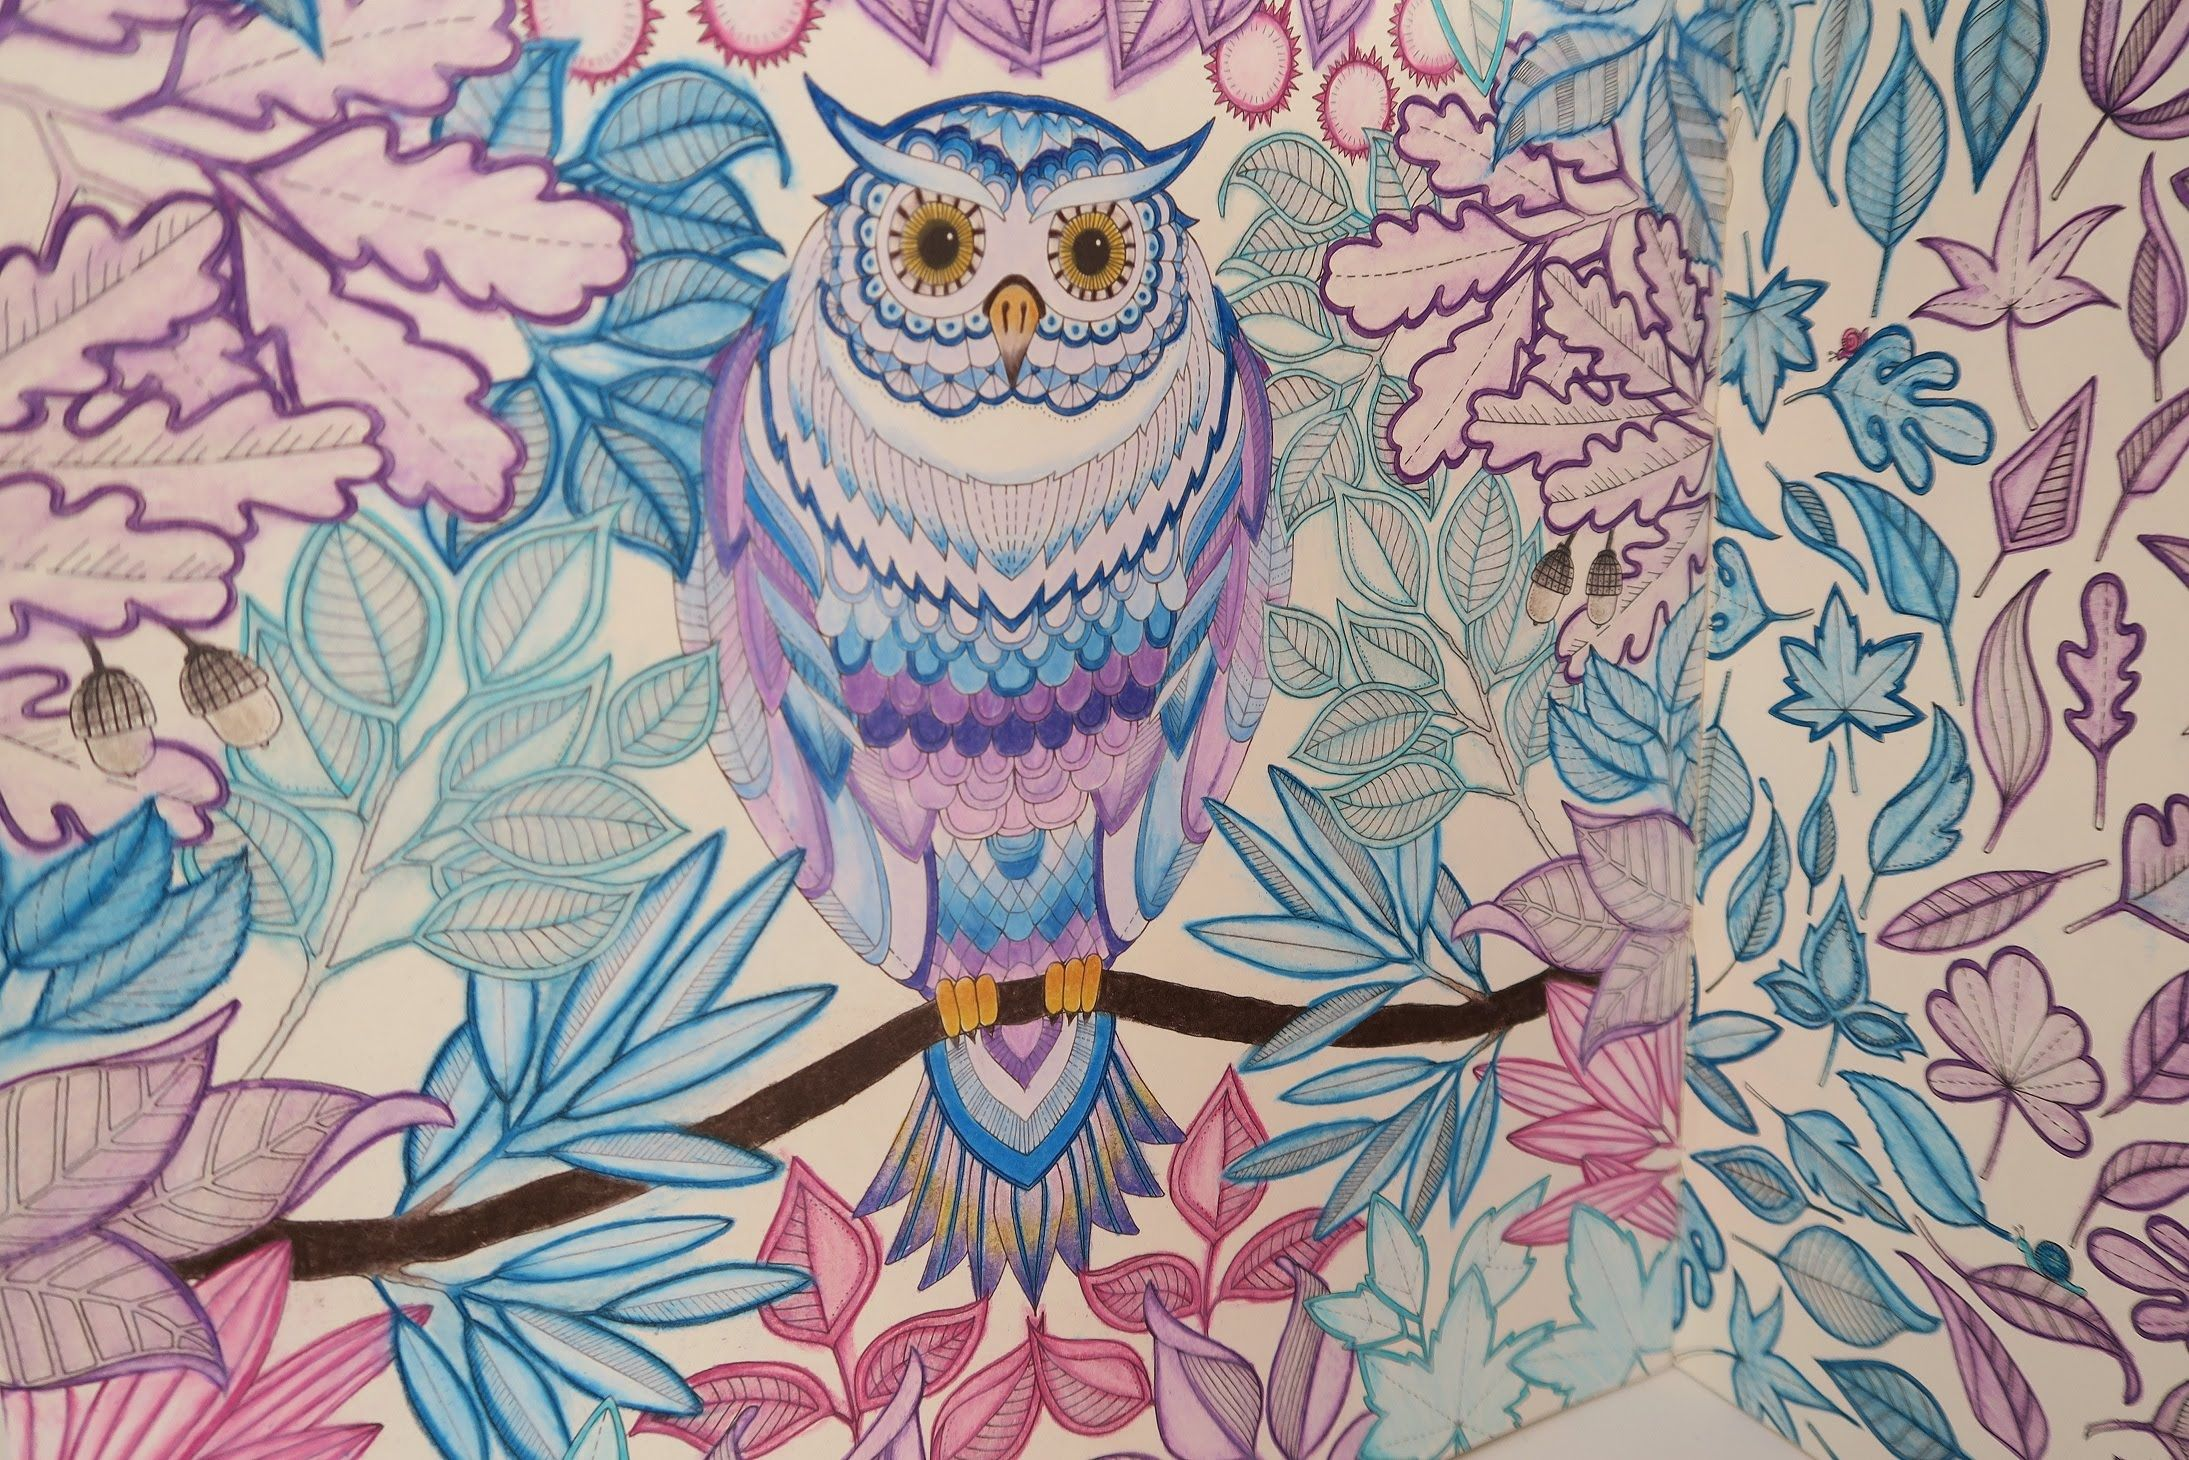 Youtube coloring book - Secret Garden Coloring Book Owl Finished Result Youtube